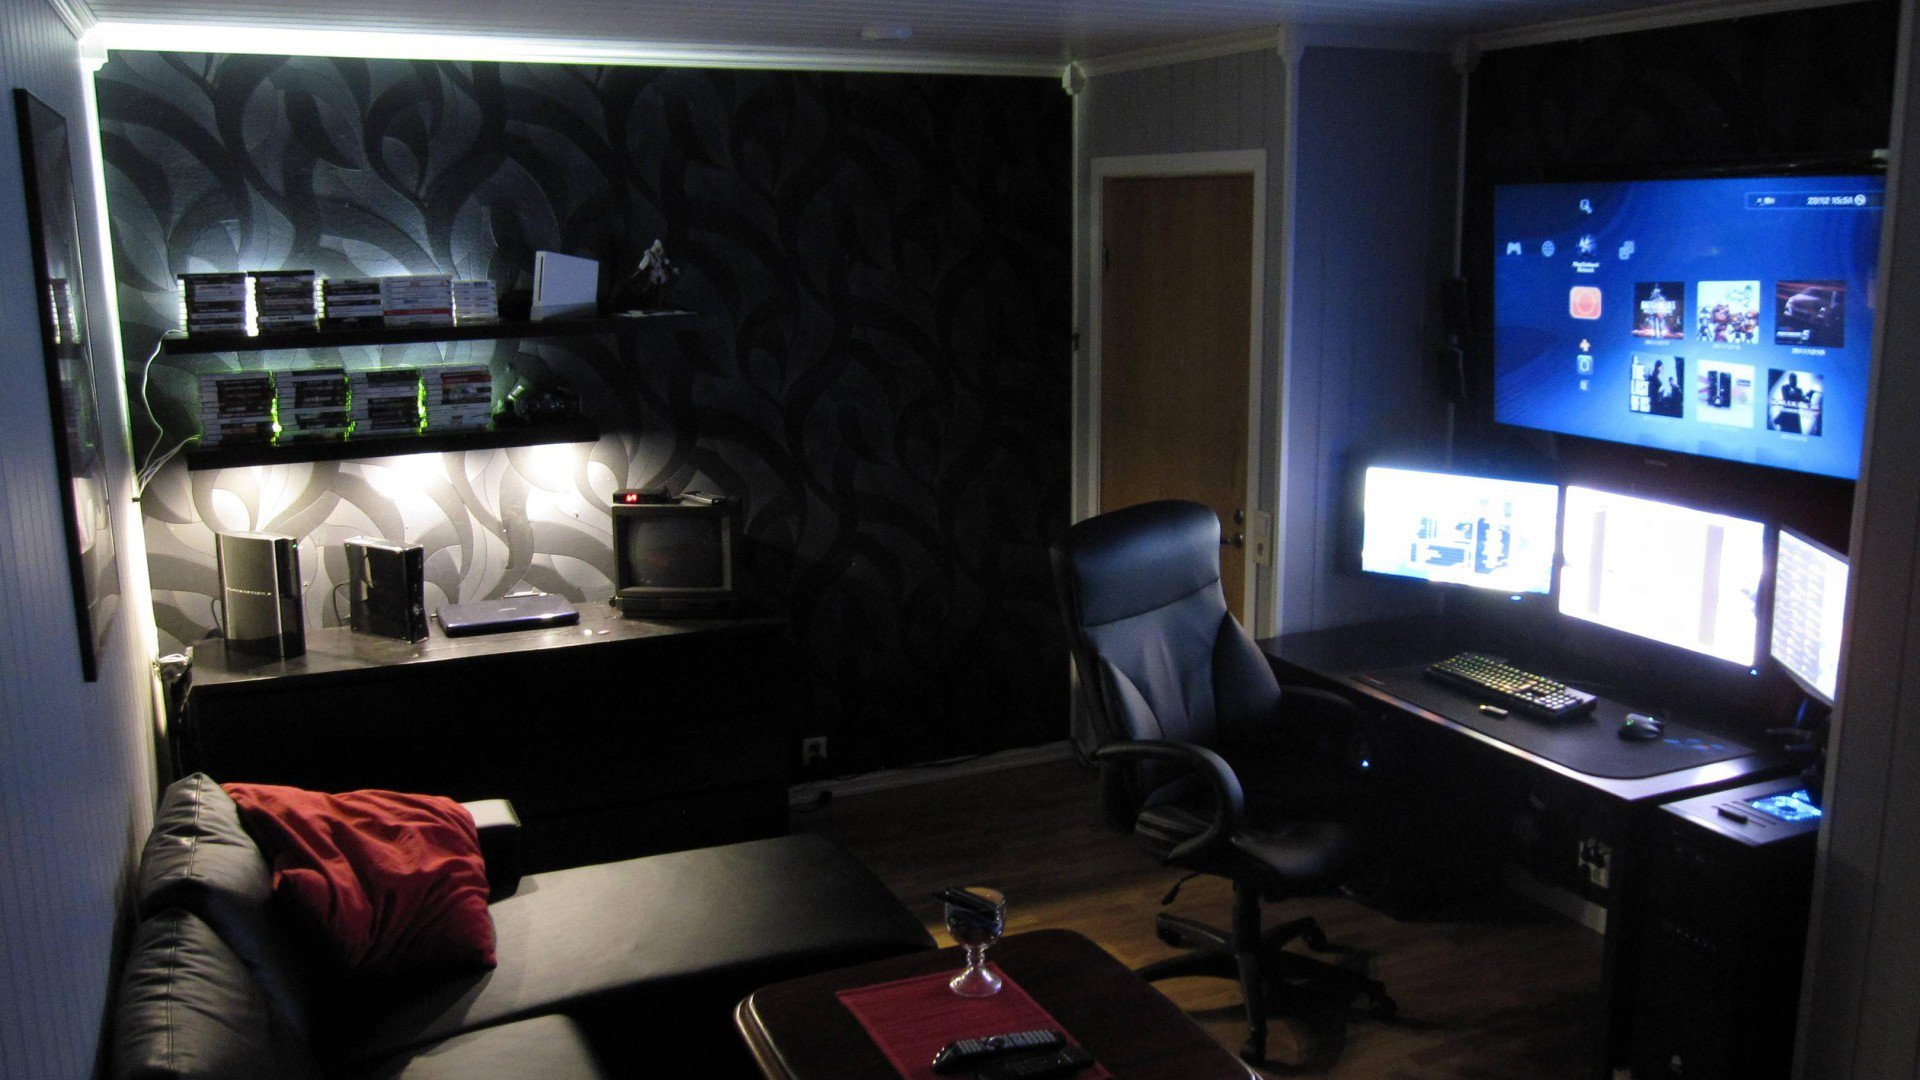 Most Popular Video Game Room Ideas [Feel the Awesome Game Play] tag: game room ideas diy, game room ideas for adults, game room ideas for a small room, game room .